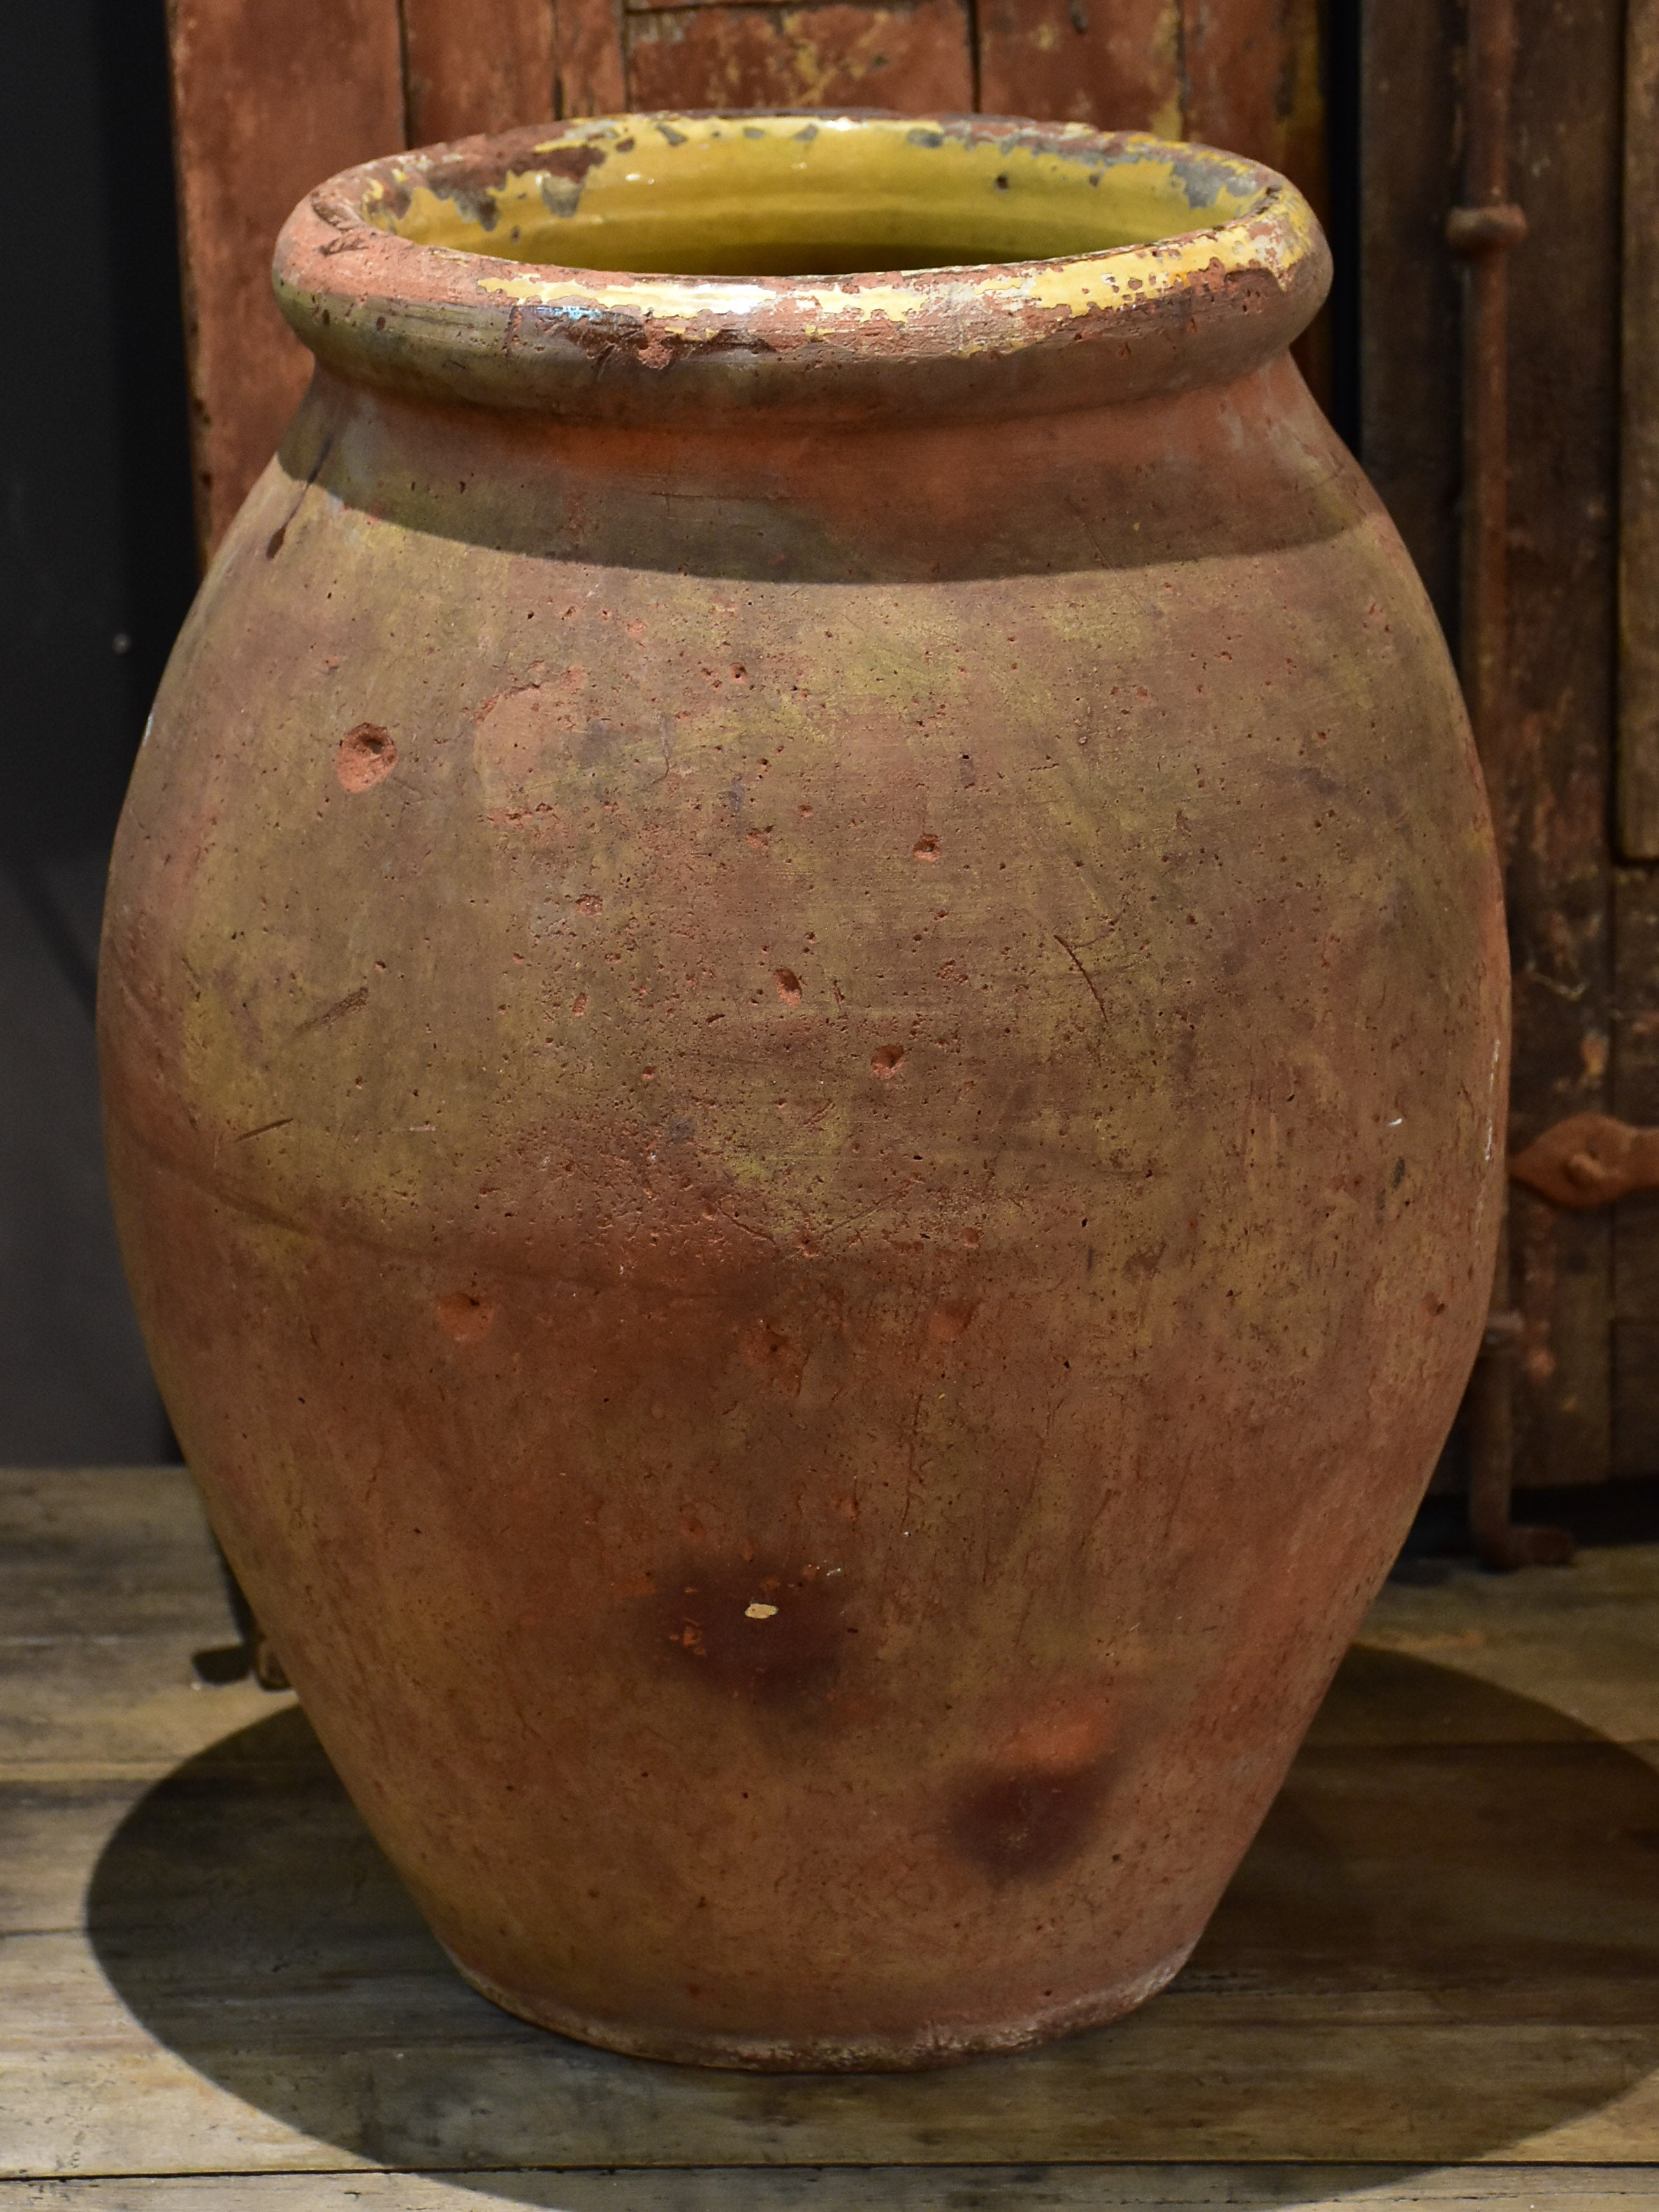 19th century French olive pot from Frejus